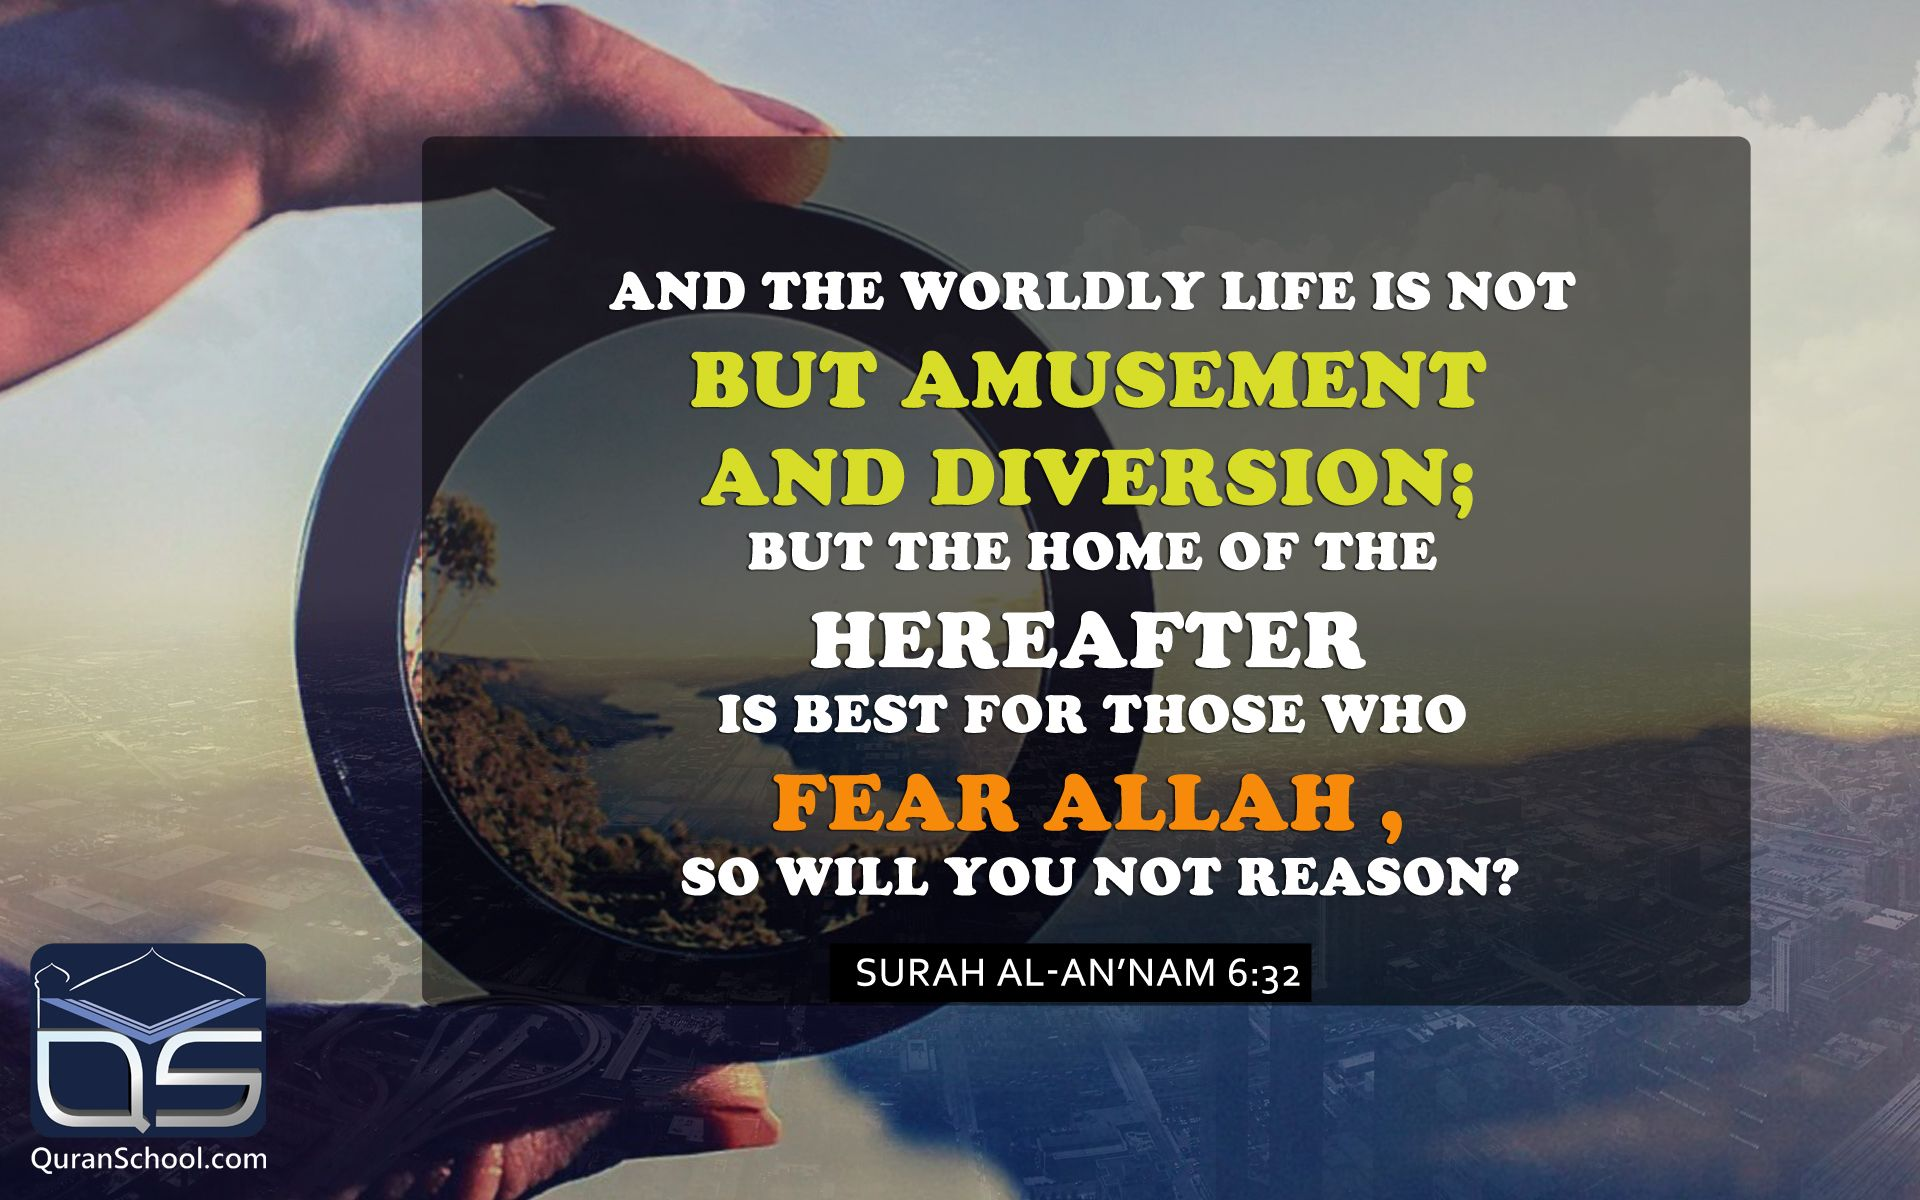 And the worldly life is not but amusement and #diversion; but the home of the Hereafter is best for those who fear #Allah , so will you not reason? SuraH Al-An'nam 6:32 http://bit.ly/1PgtFLO